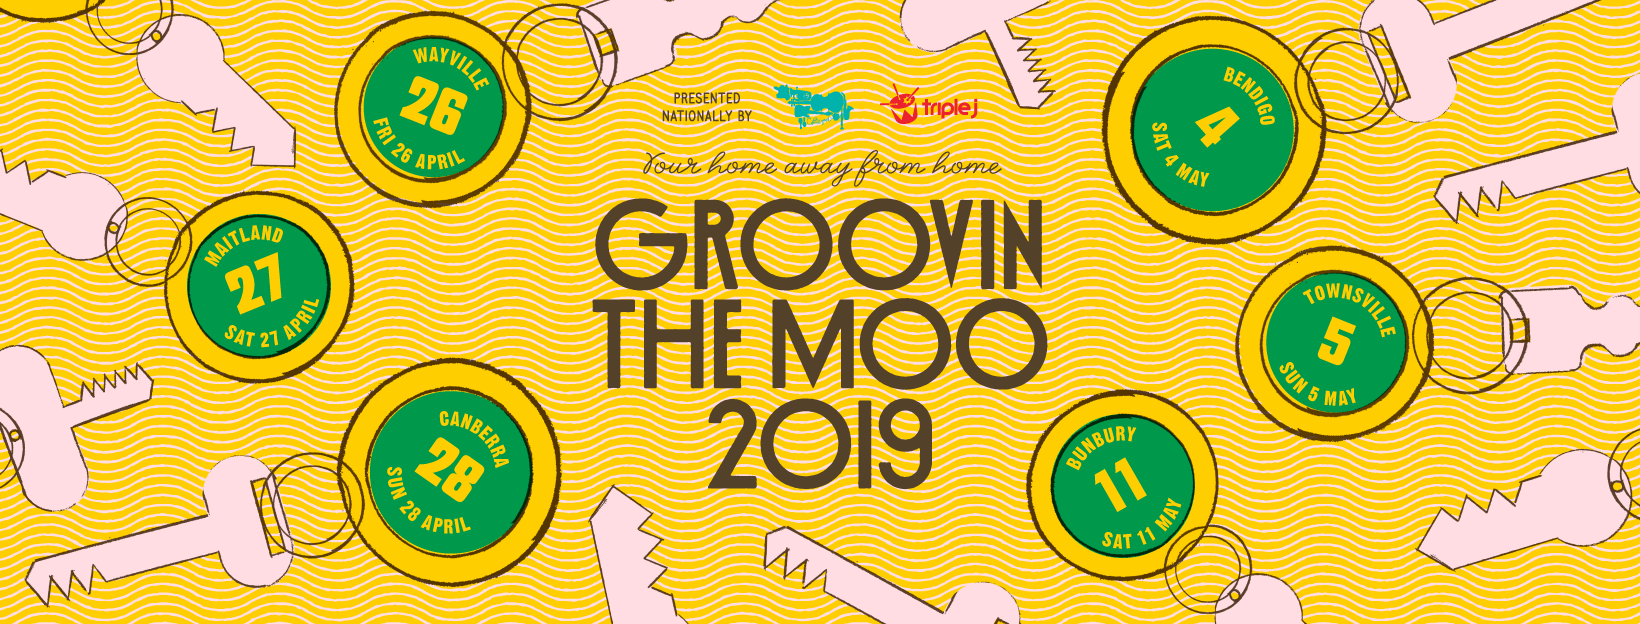 Time To Check-In to Groovin The Moo 2019, Your Home Away